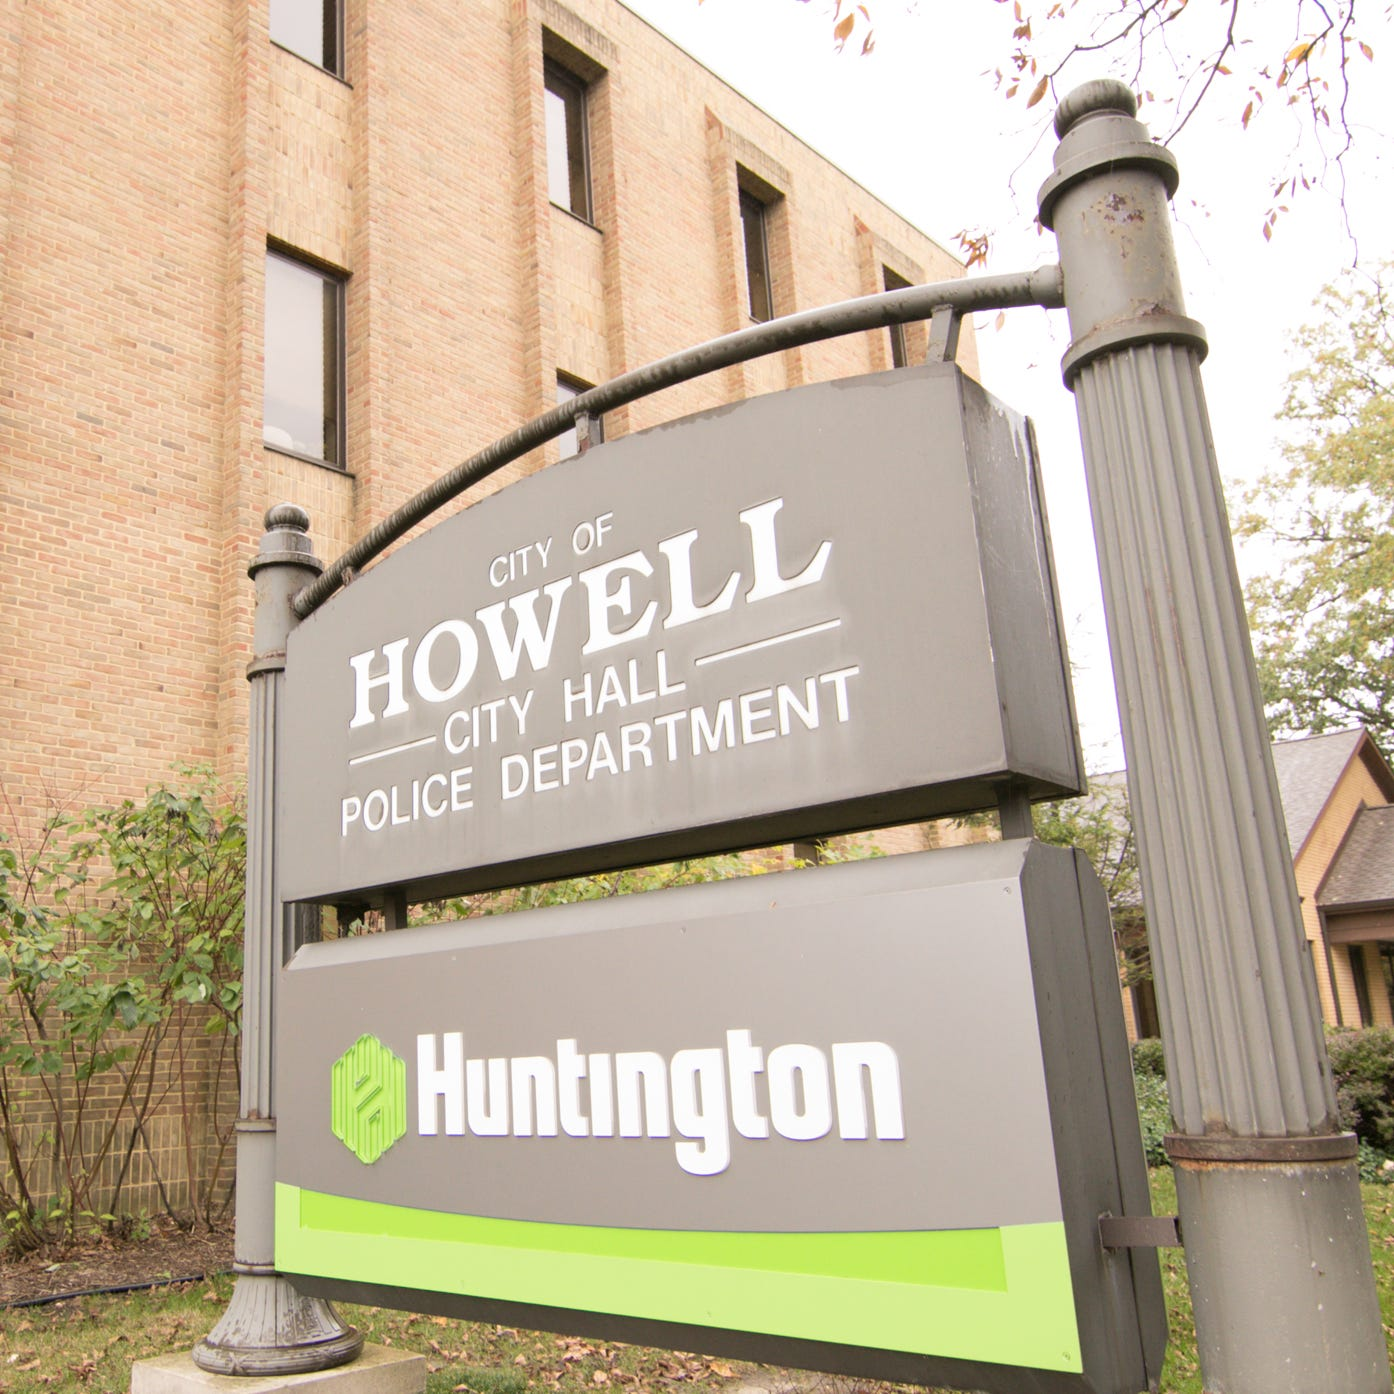 City of Howell eyes cuts to services, stoppage to most road repairs to fix budget